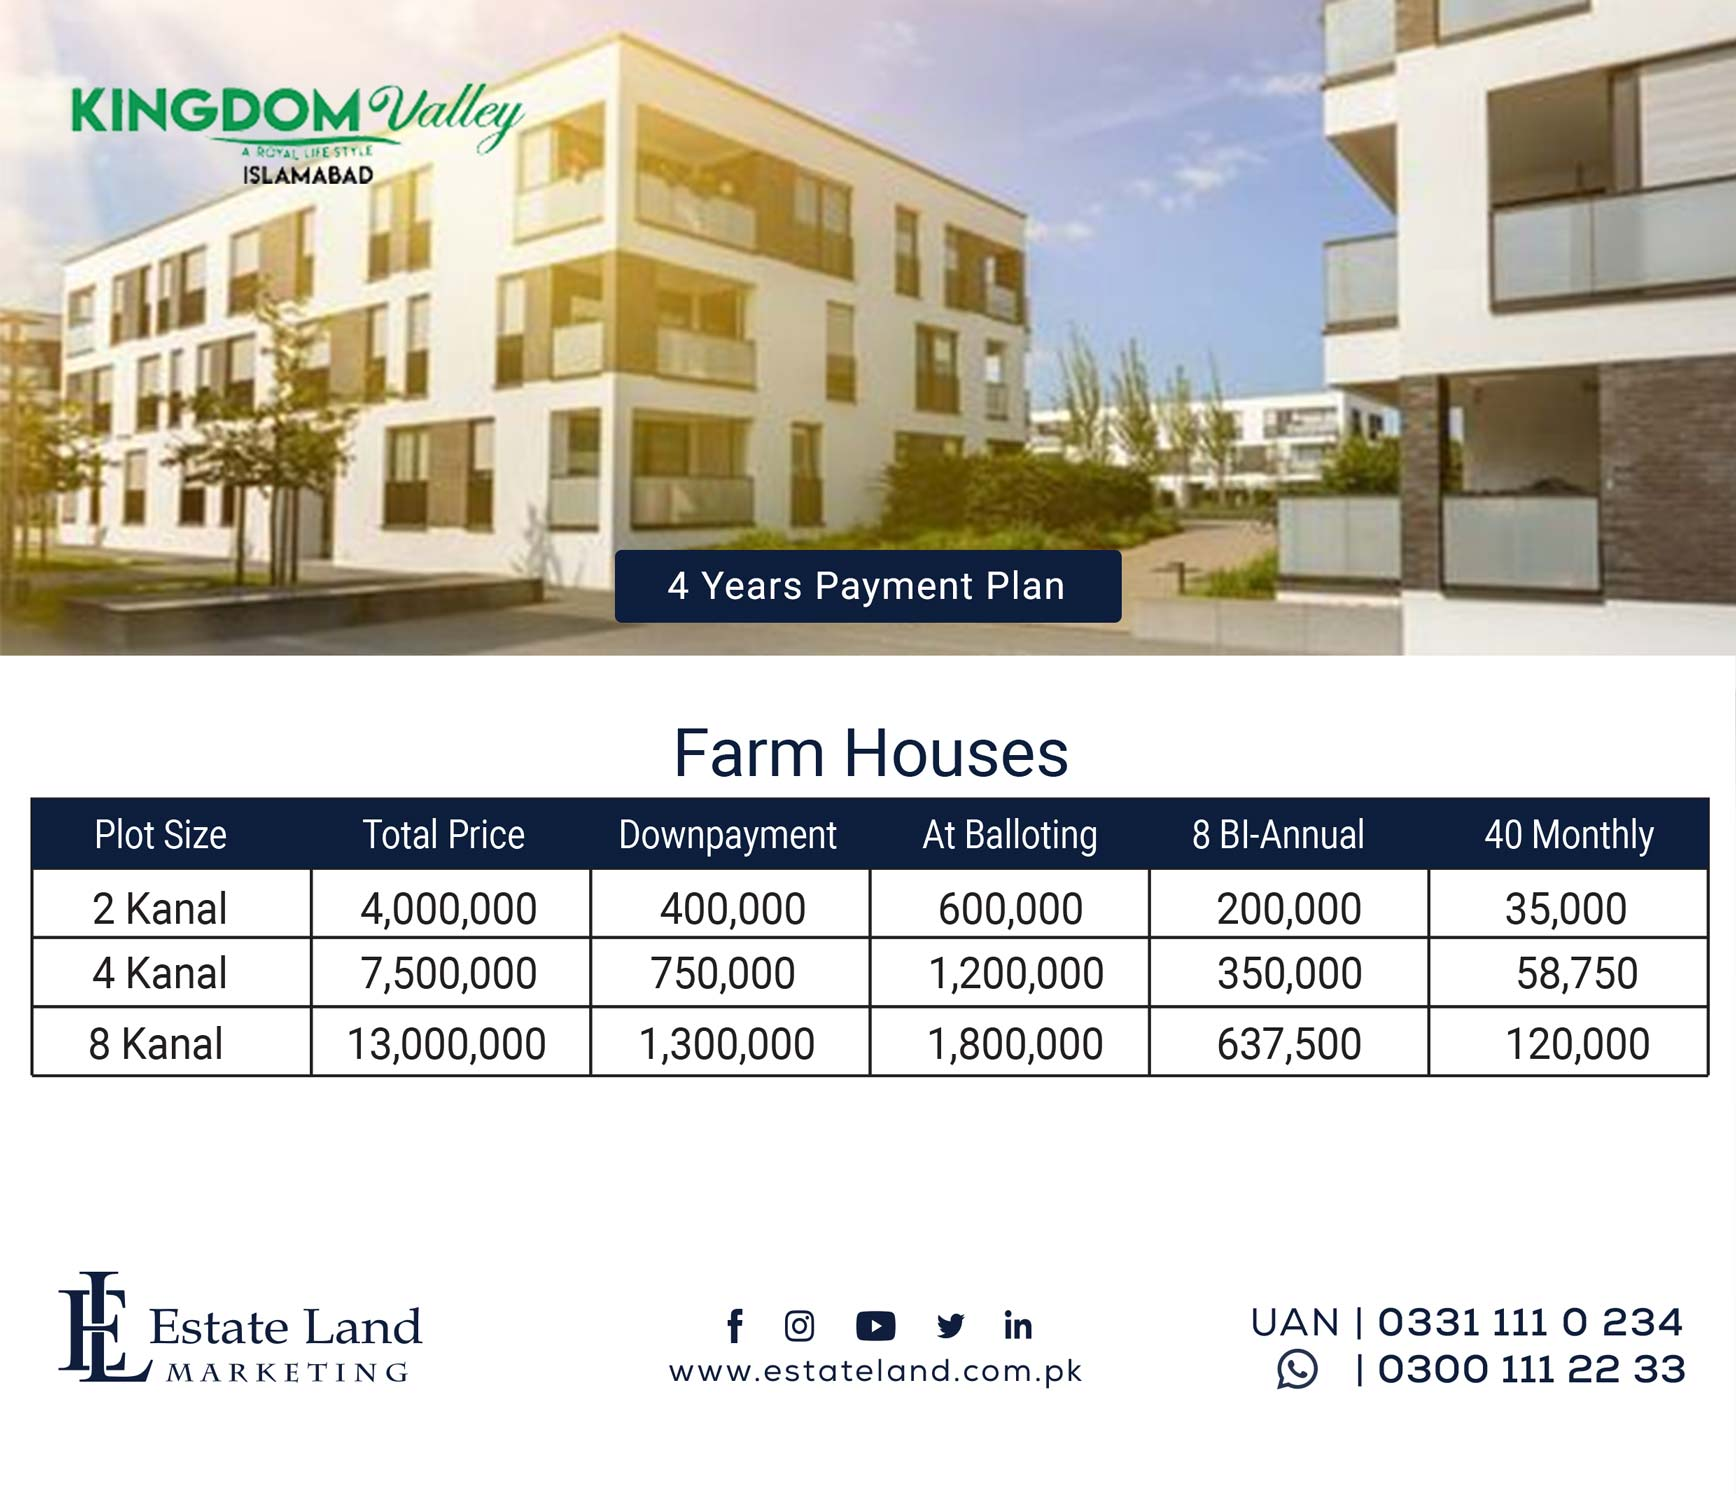 Valley Farmhouse payment plan